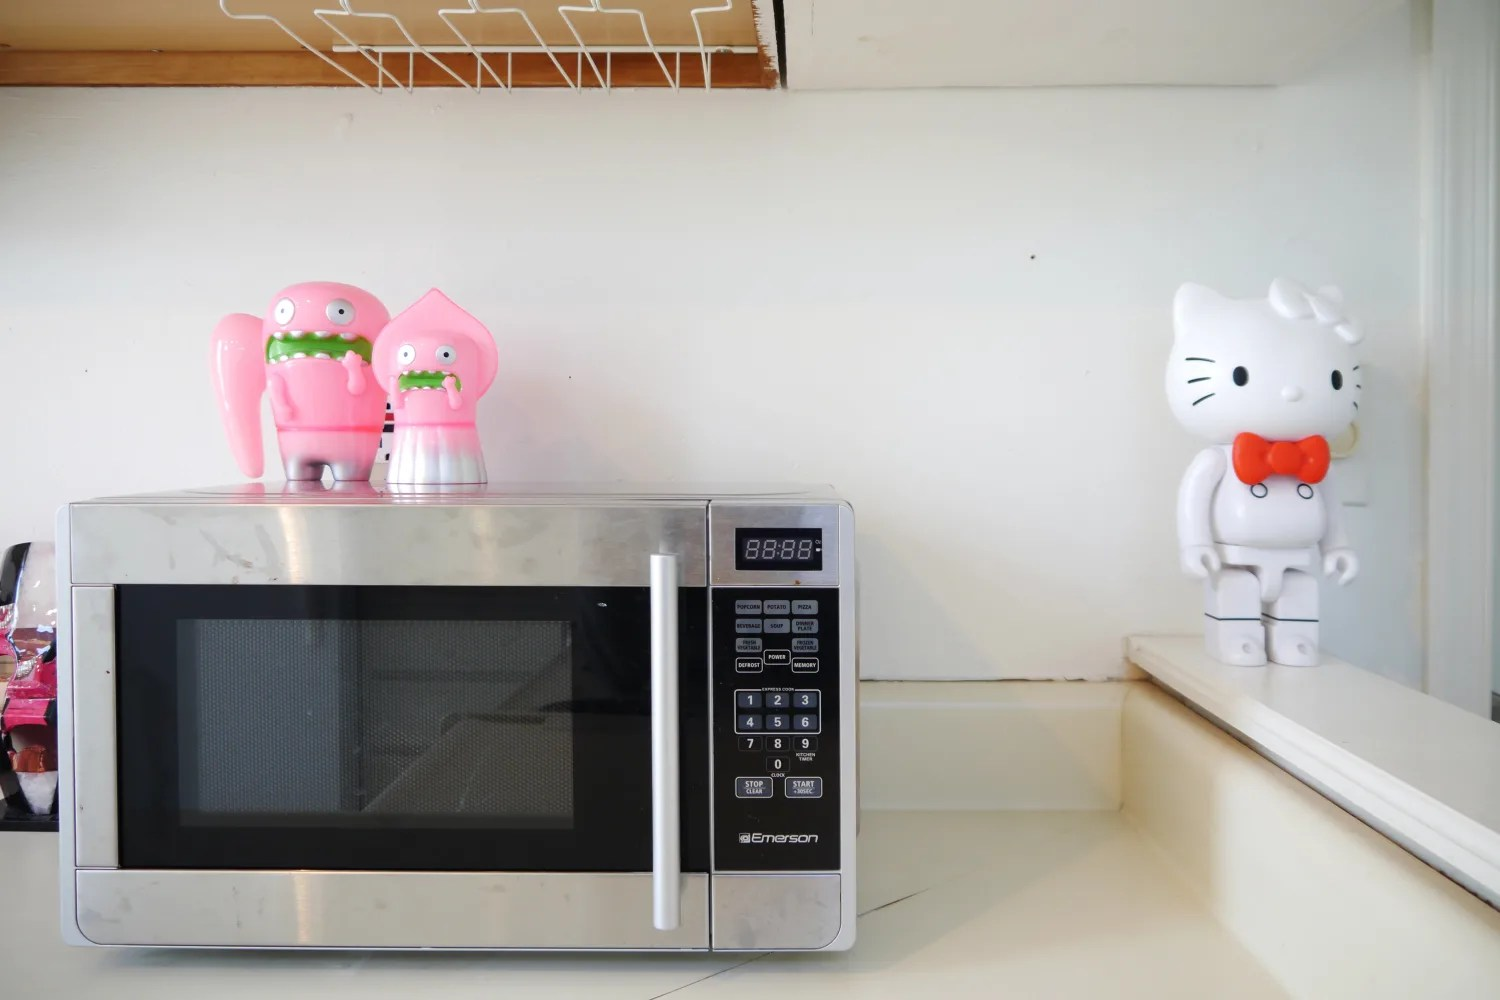 buying a new microwave